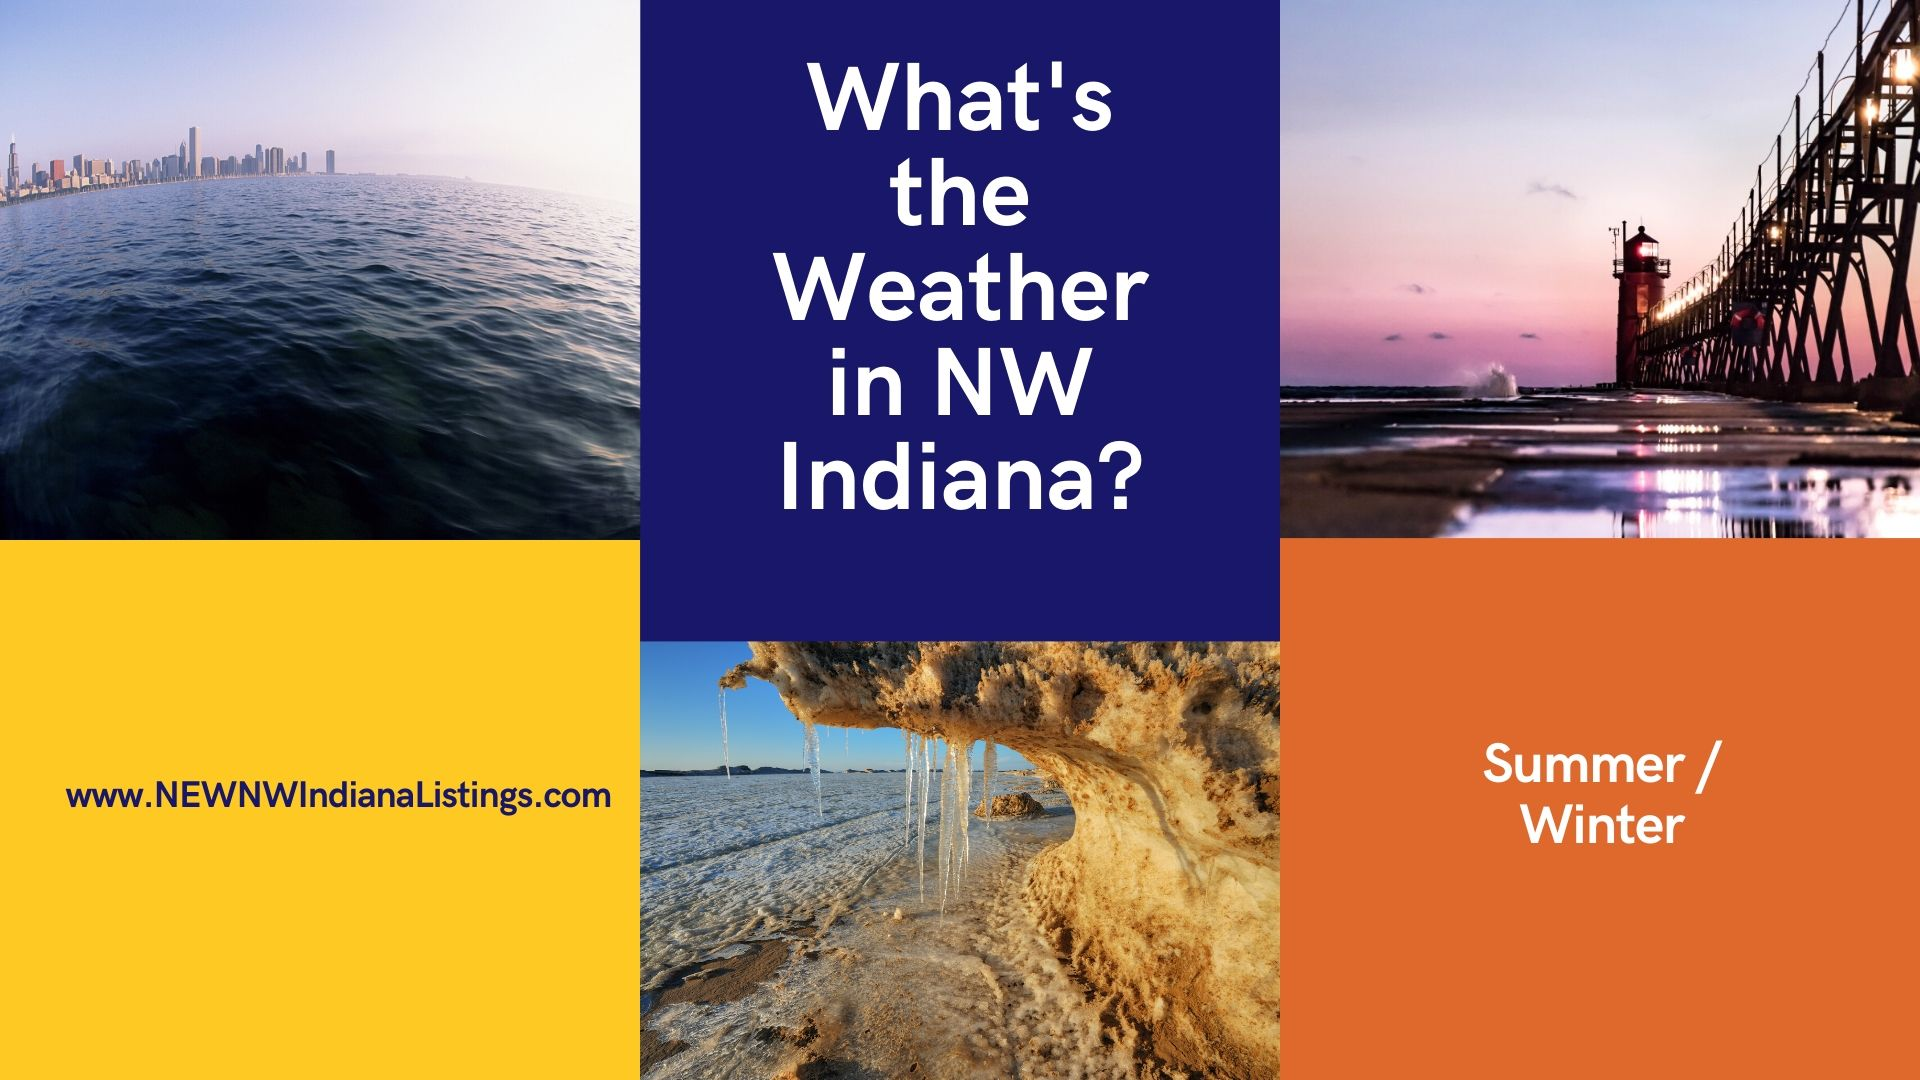 What's the Weather in NW Indiana